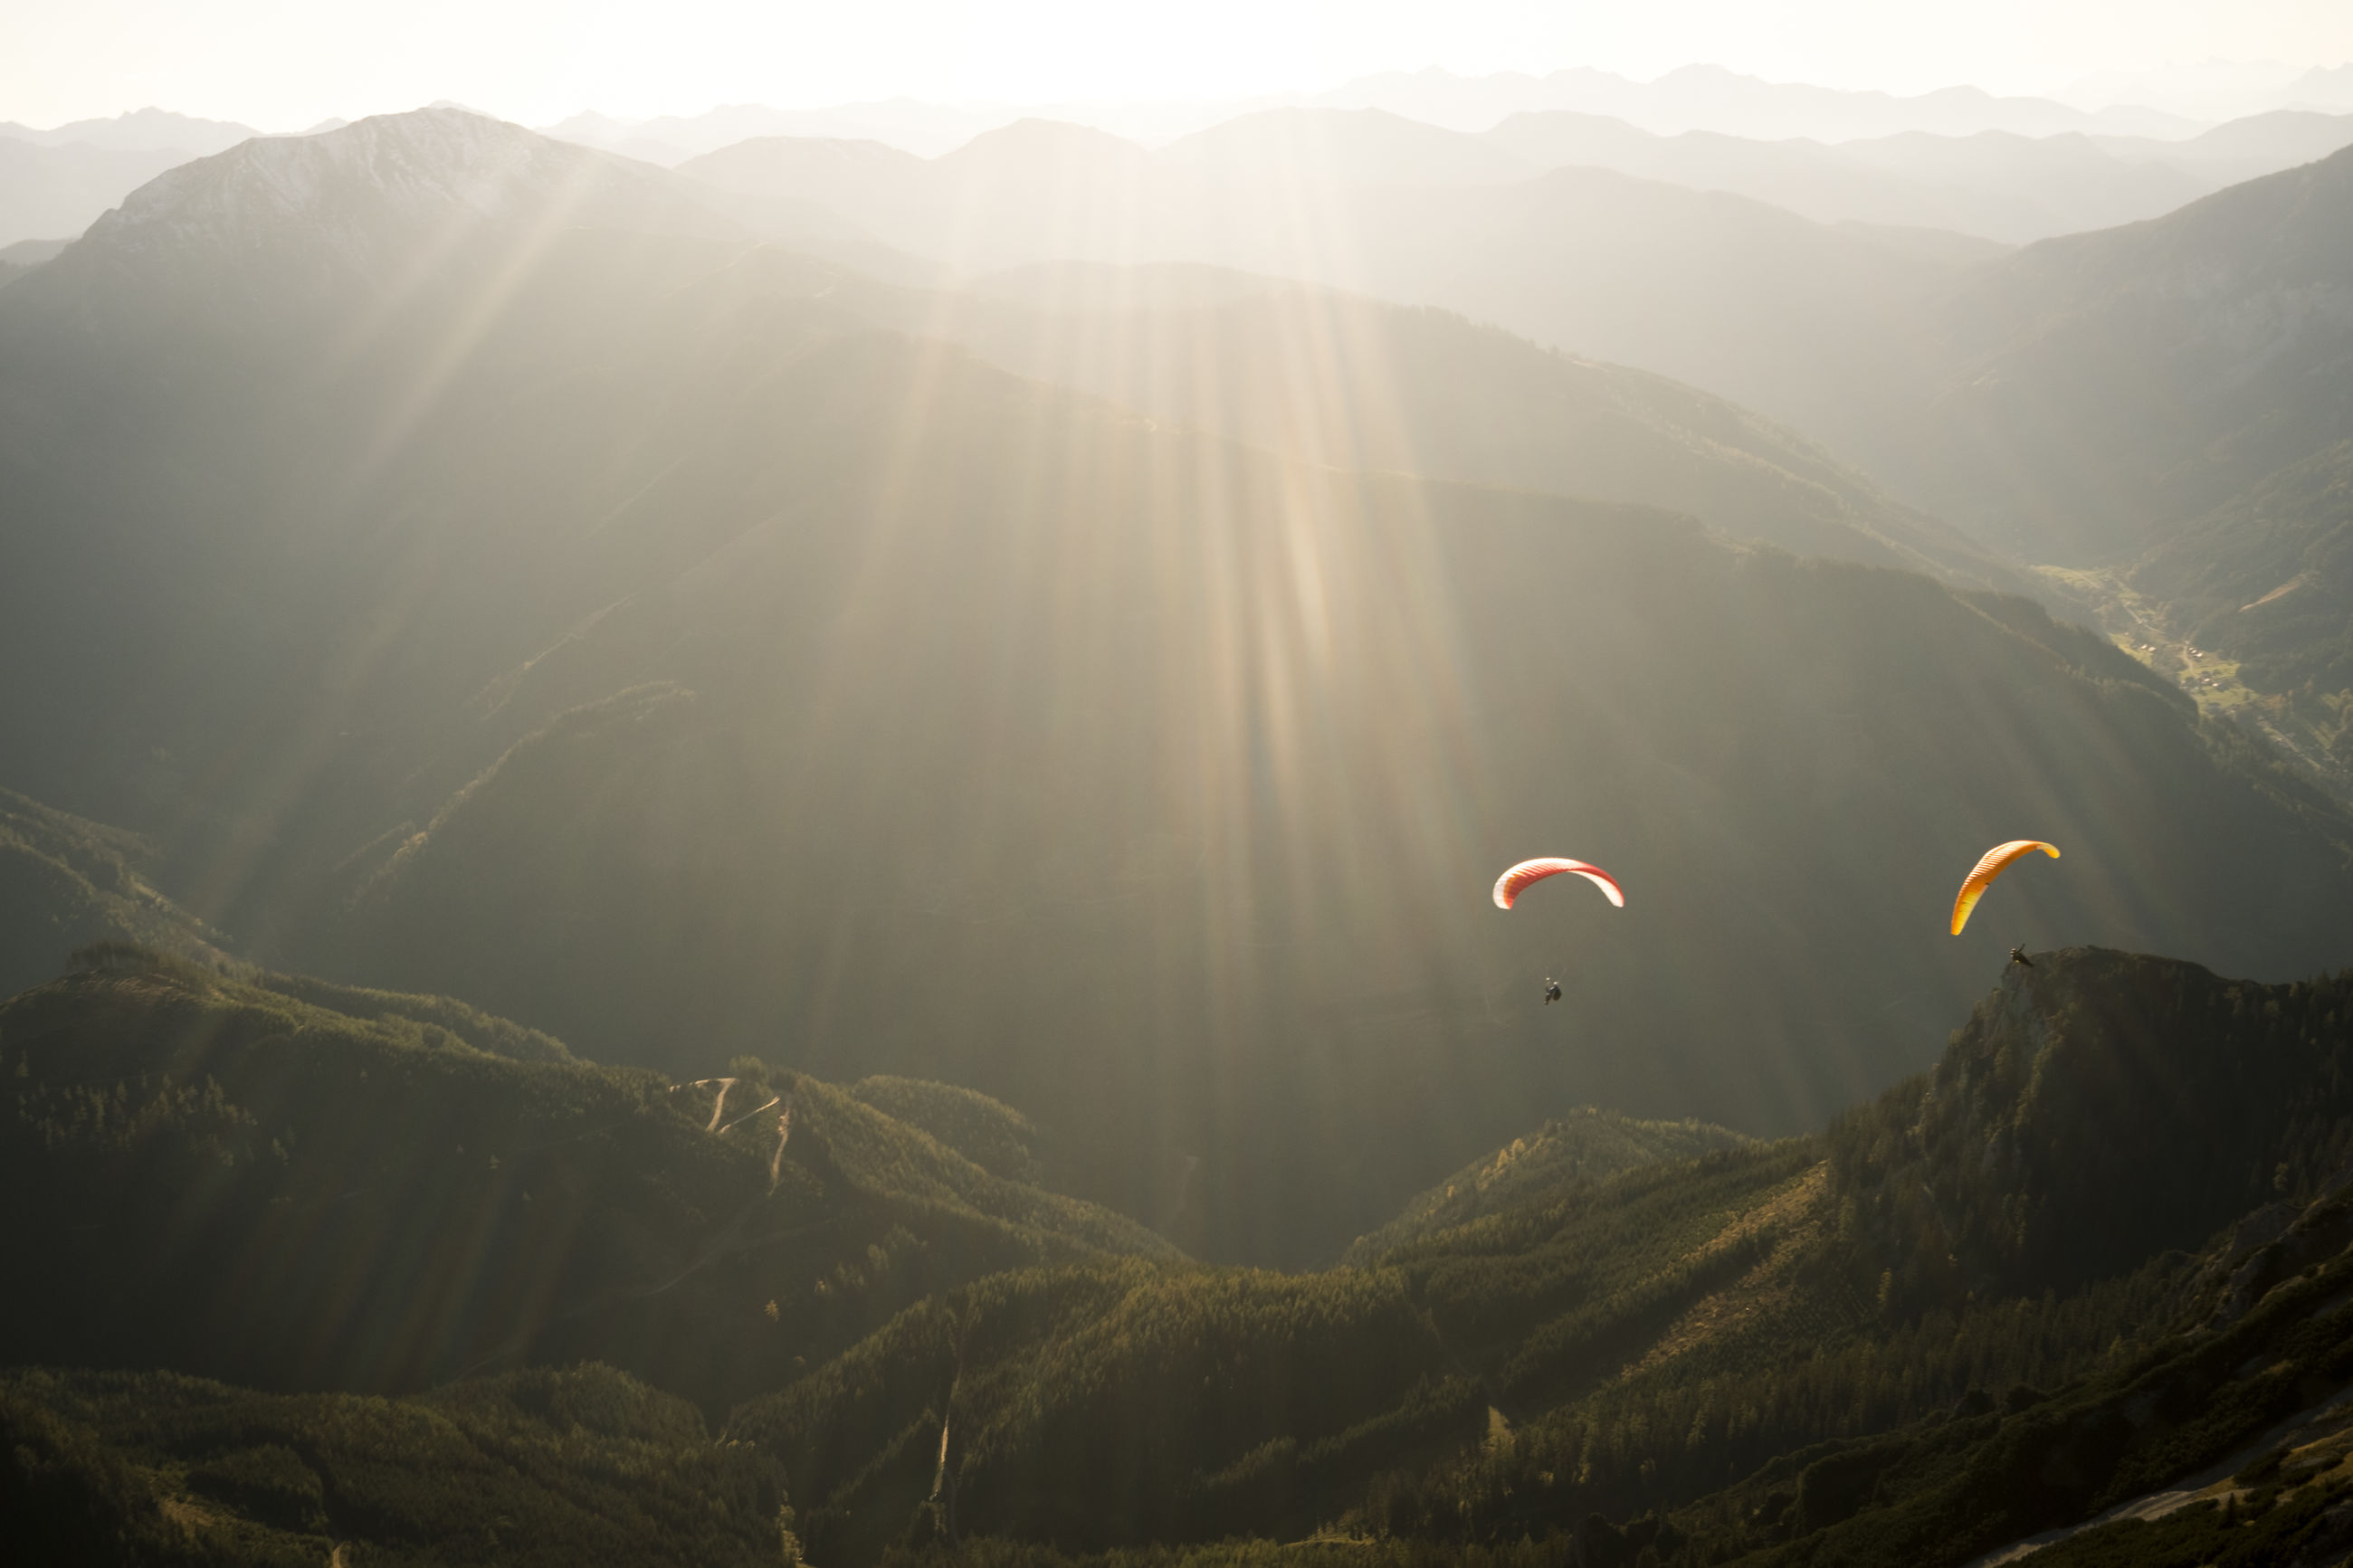 mountain, adventure, beauty in nature, sunlight, mountain range, parachute, sky, scenics - nature, sunbeam, paragliding, extreme sports, nature, tranquility, lens flare, tranquil scene, leisure activity, sun, environment, day, sport, freedom, outdoors, bright